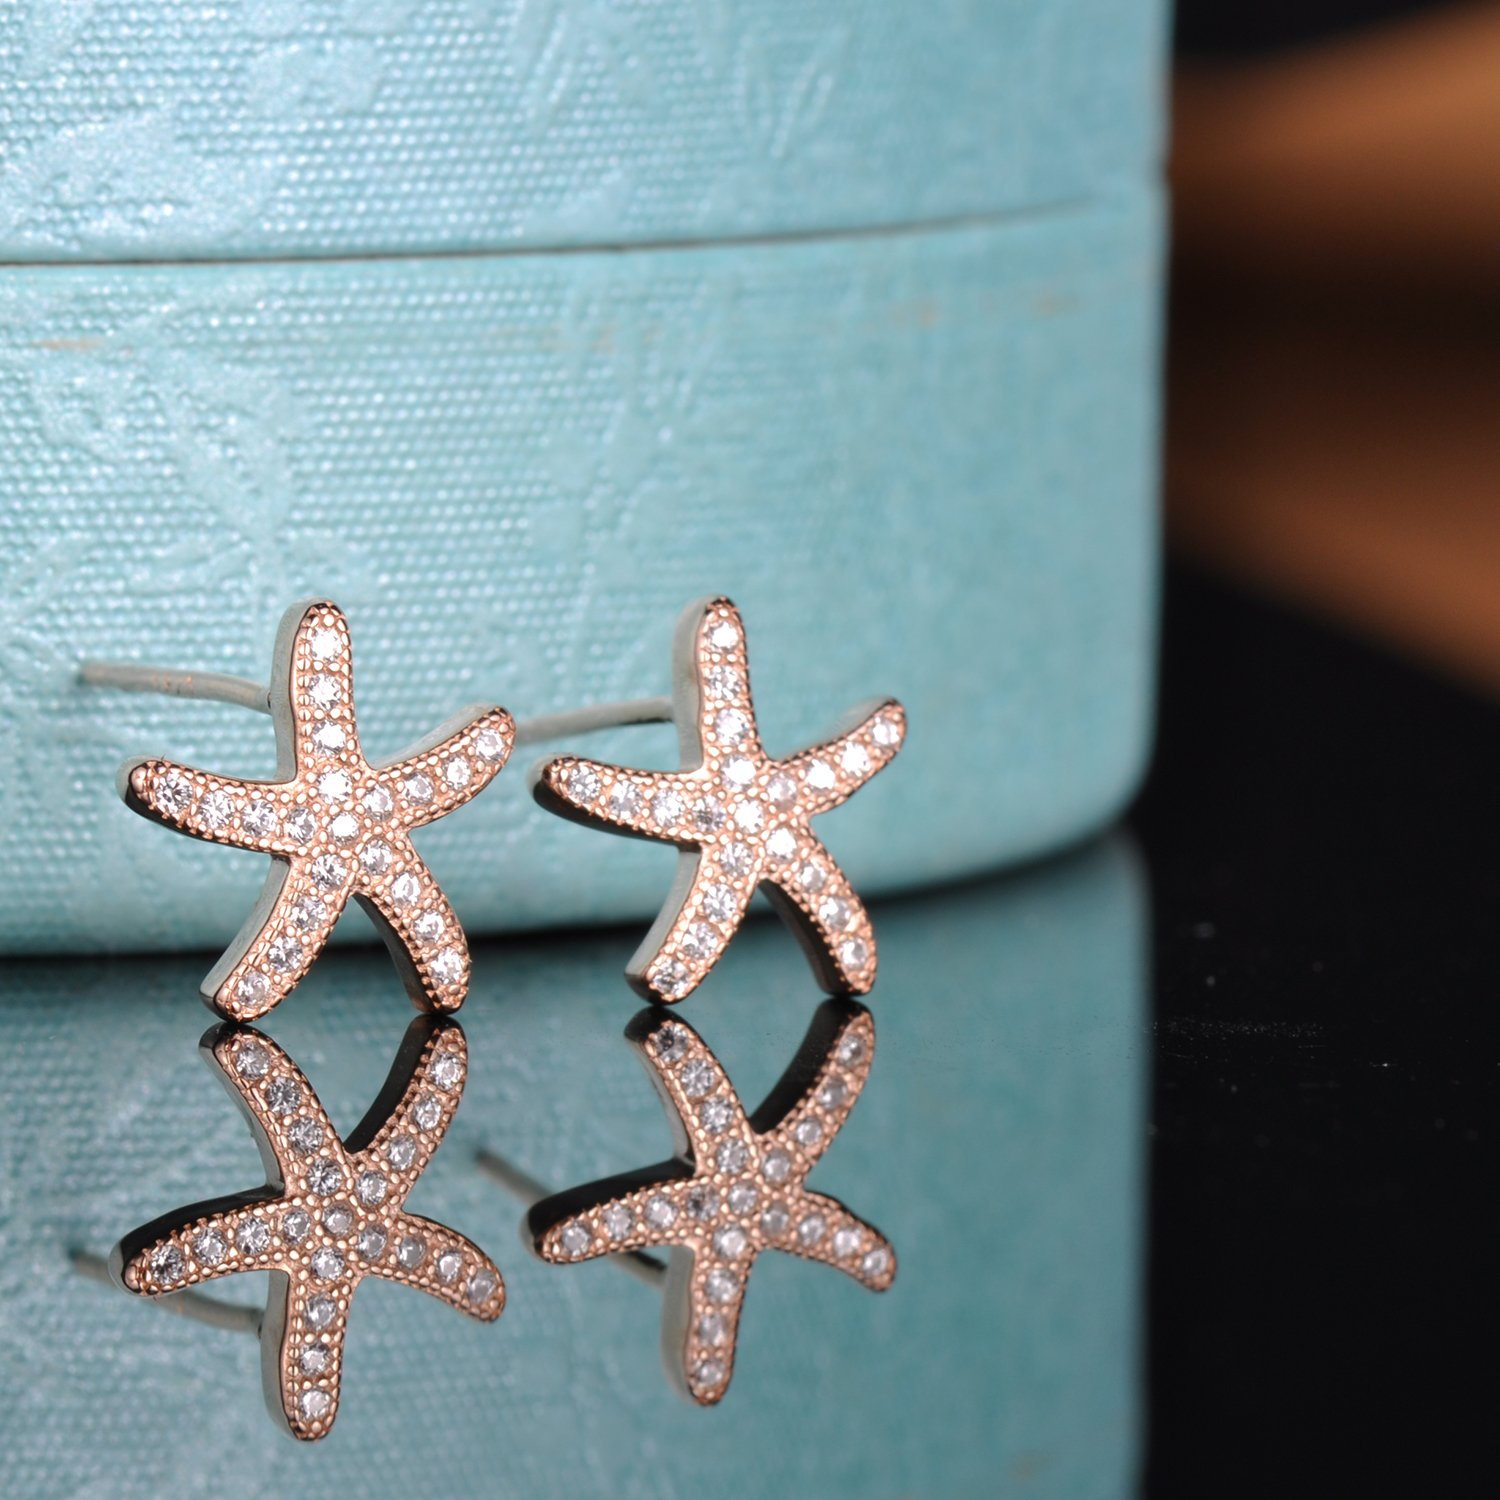 Yumilok Jewelry 925 Sterling Silver Cubic Zirconia Rose Gold Plated Starfish Stud Hypoallergenic Earring for Women//Ladies//Girls